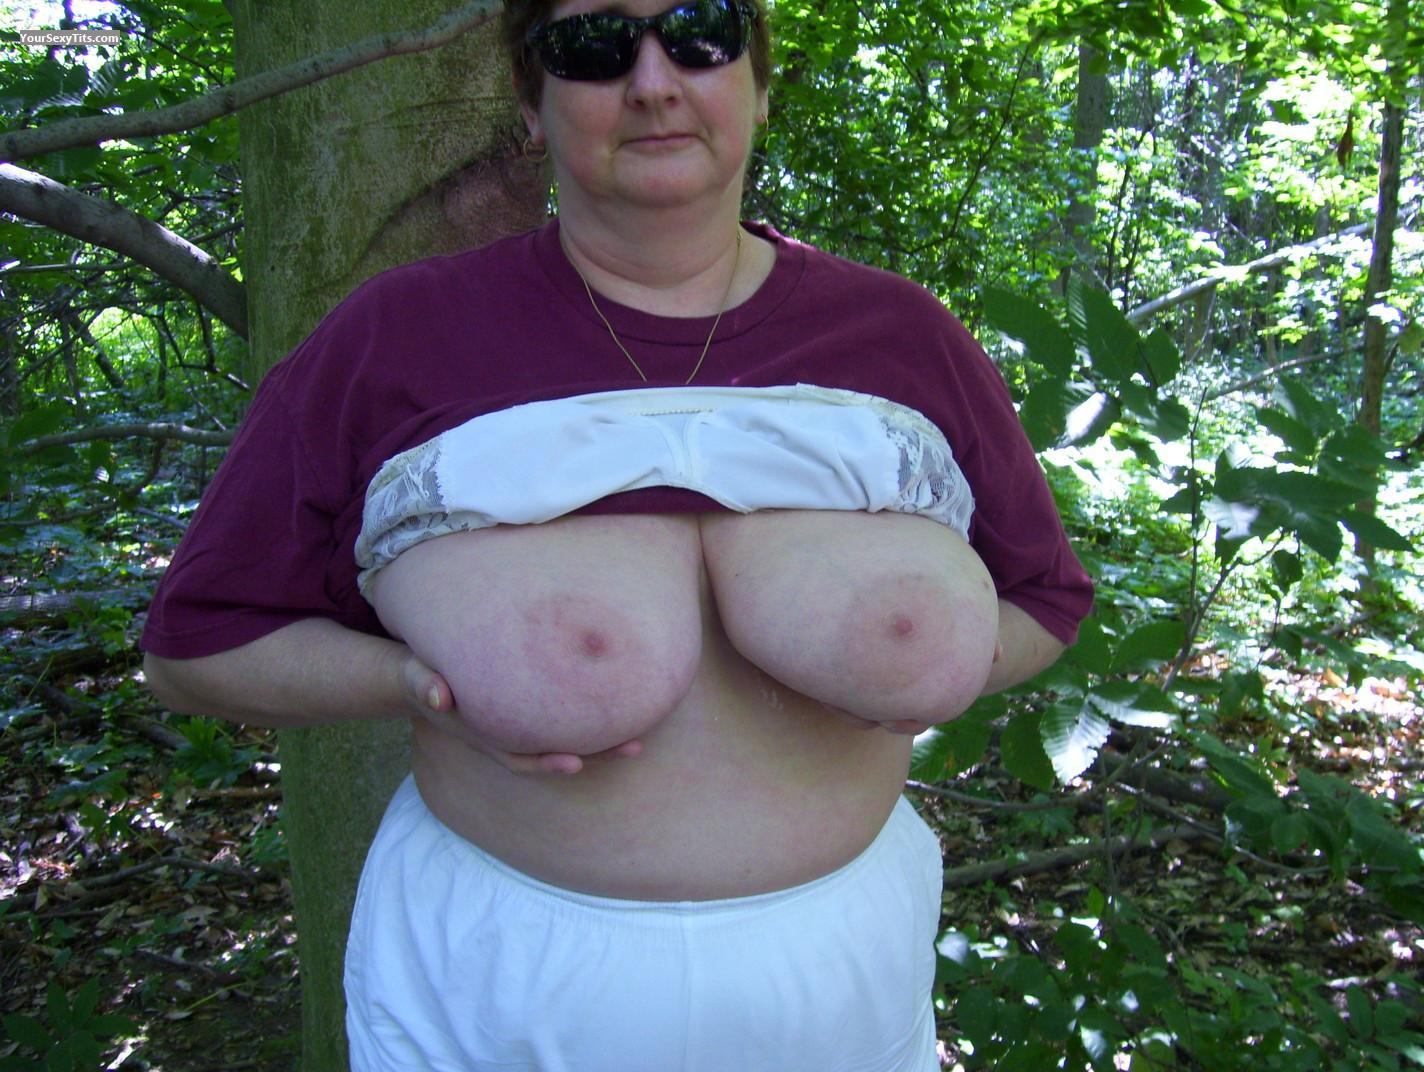 Tit Flash: Very Big Tits - Topless Boobies from Canada